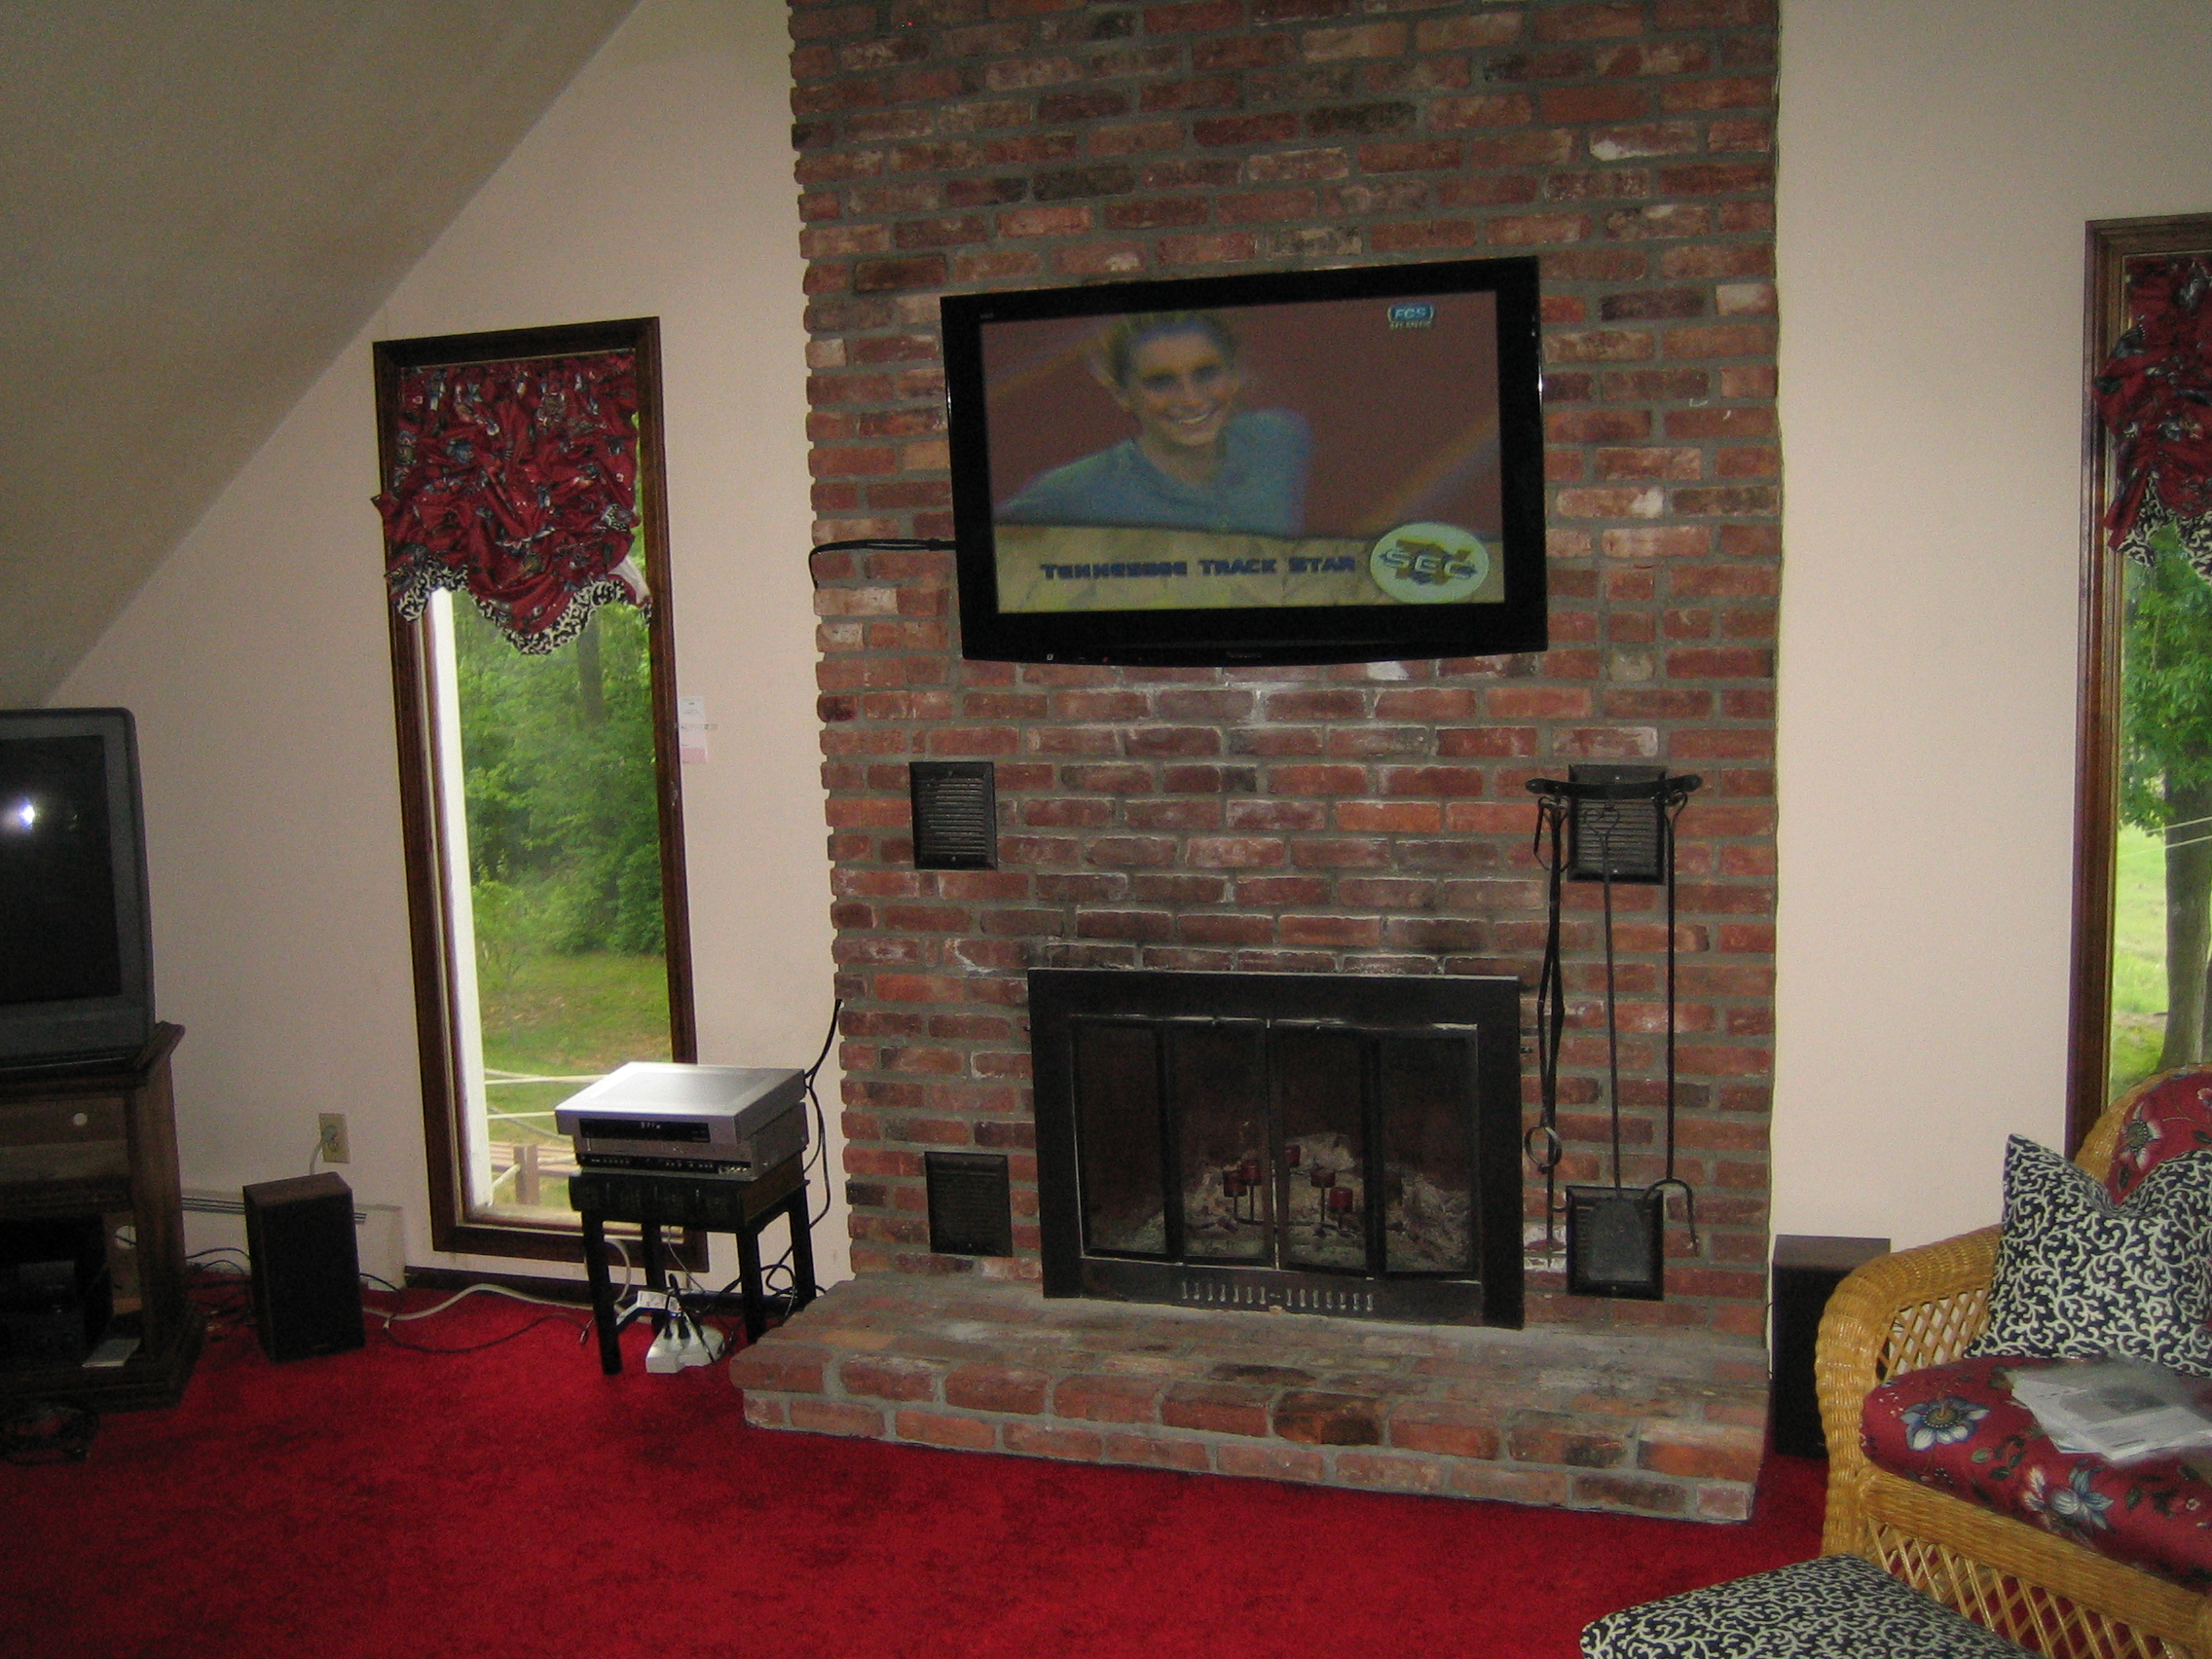 Photos Of Tv Mounted Over Fireplace Durham Ct Mount Tv Above Fireplace Home Theater Installation